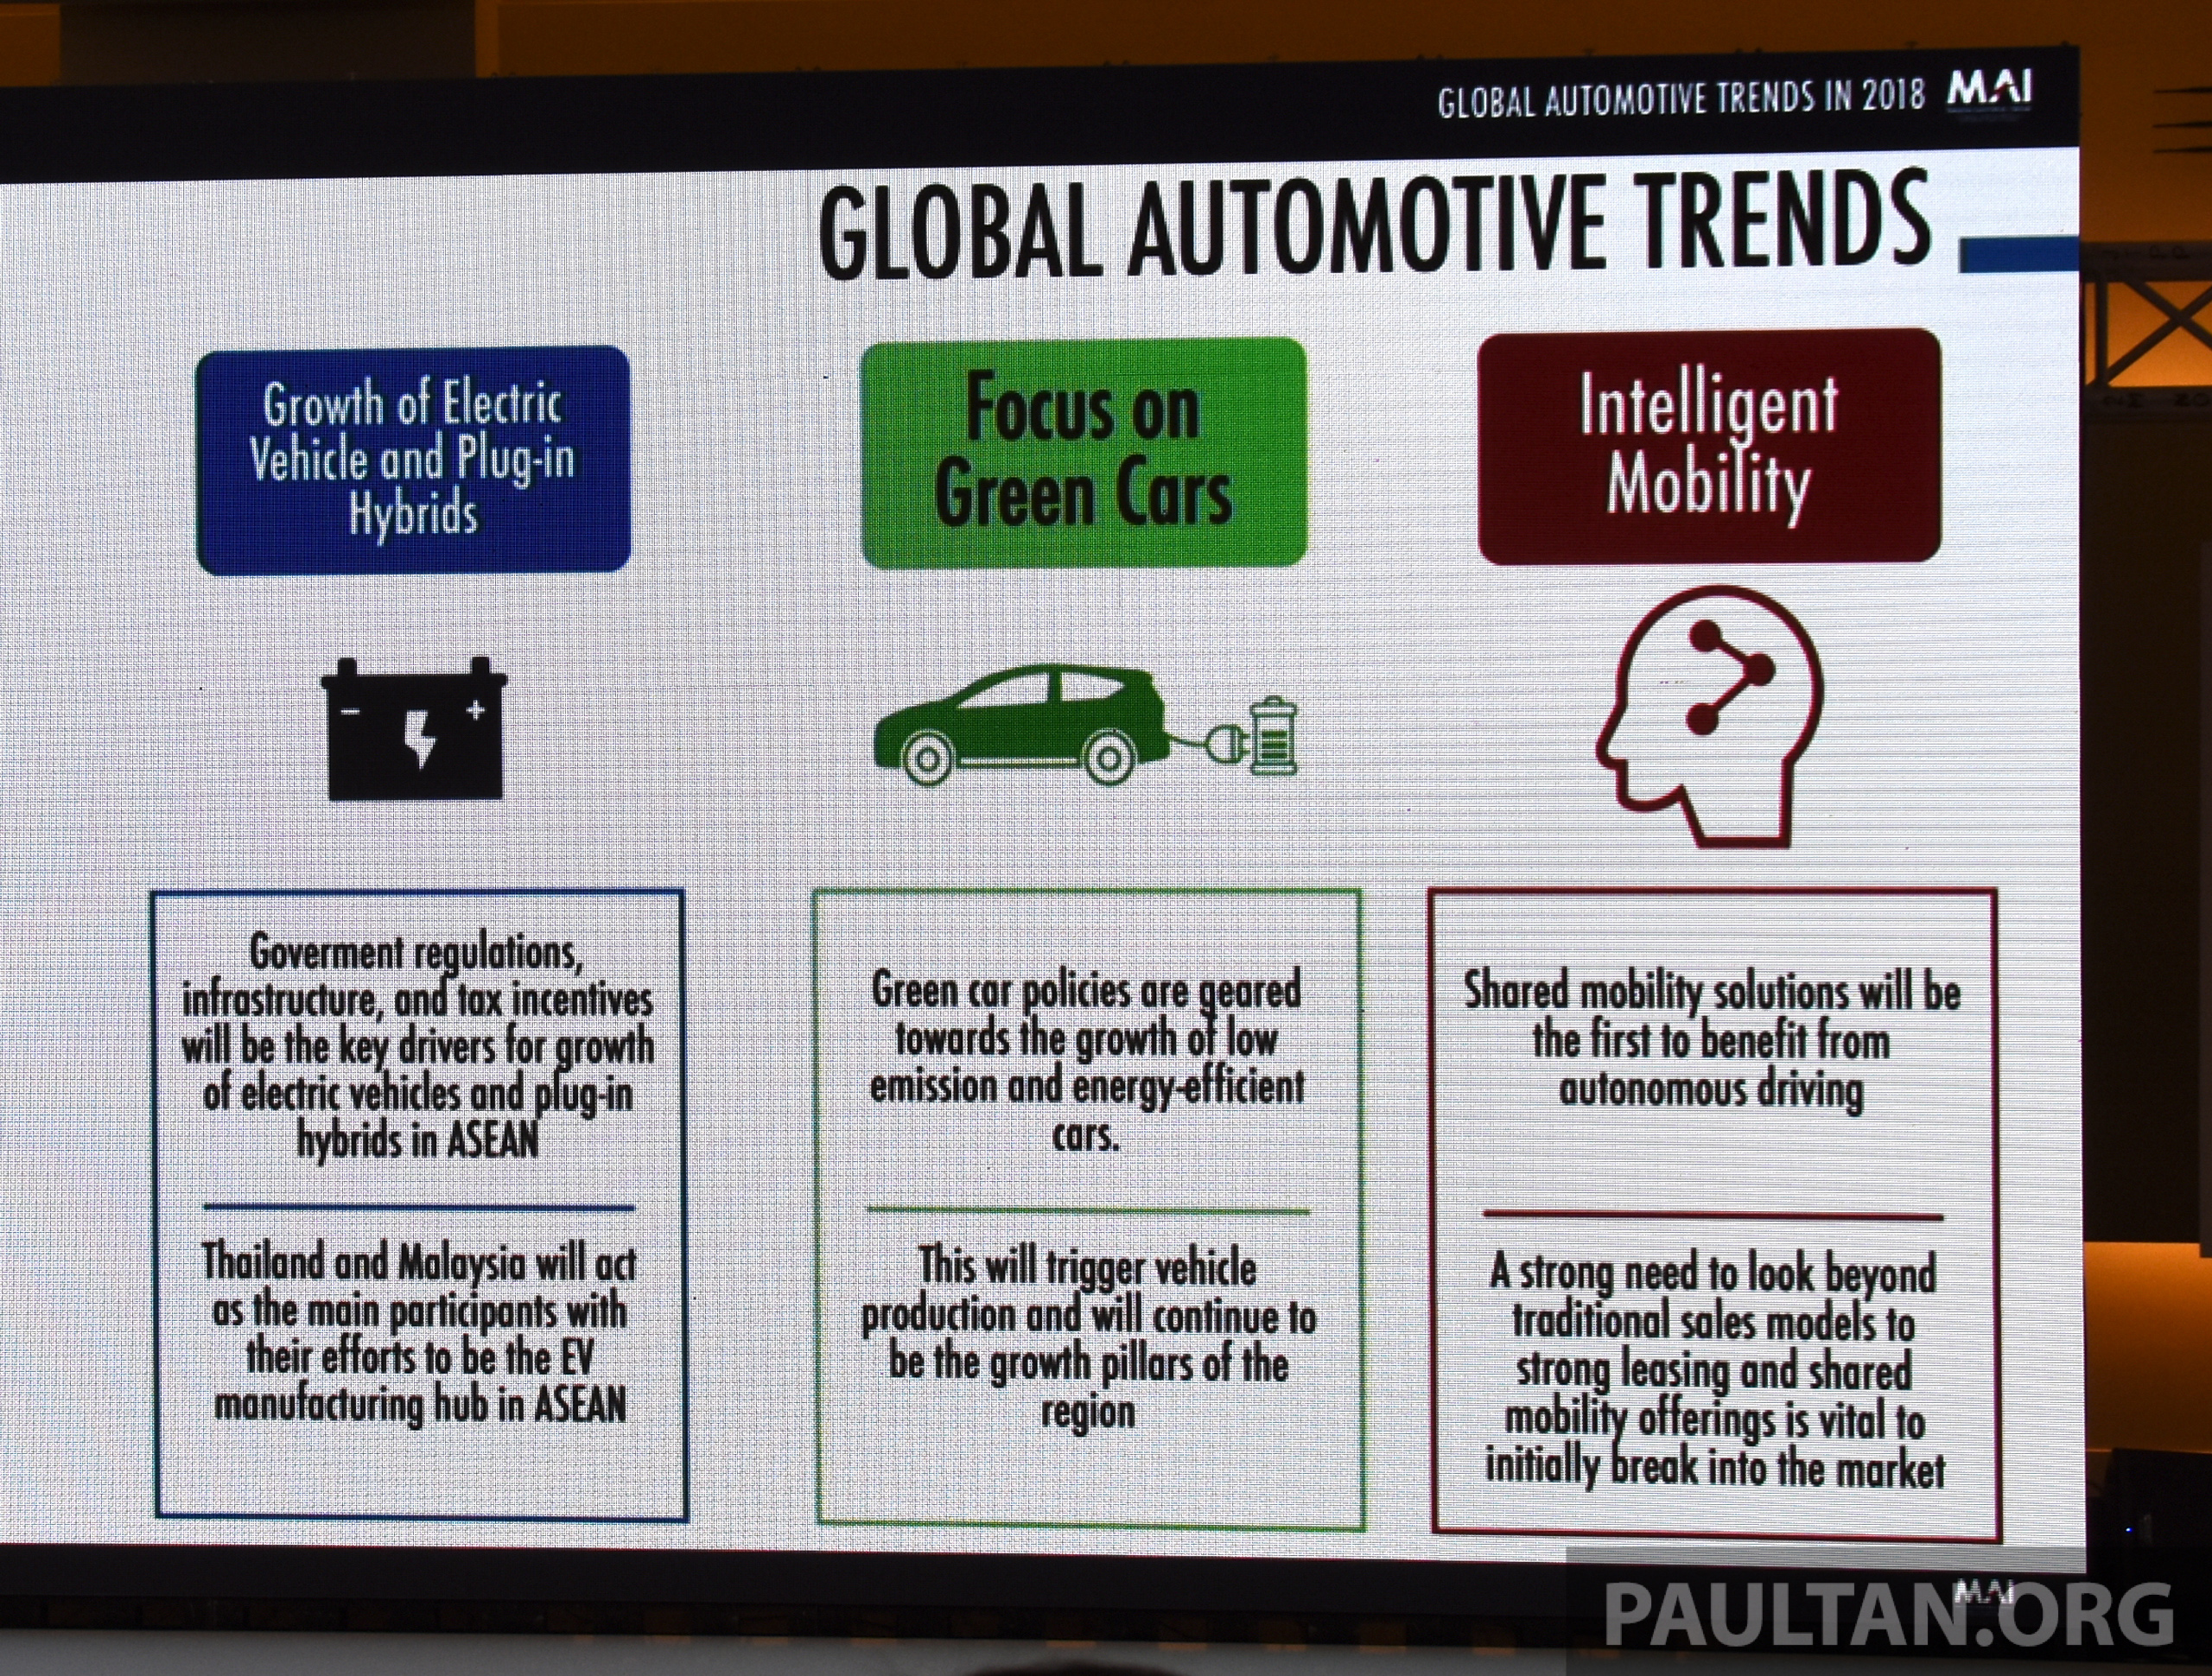 Malaysian automotive industry outlook for 2018 – growth expected on